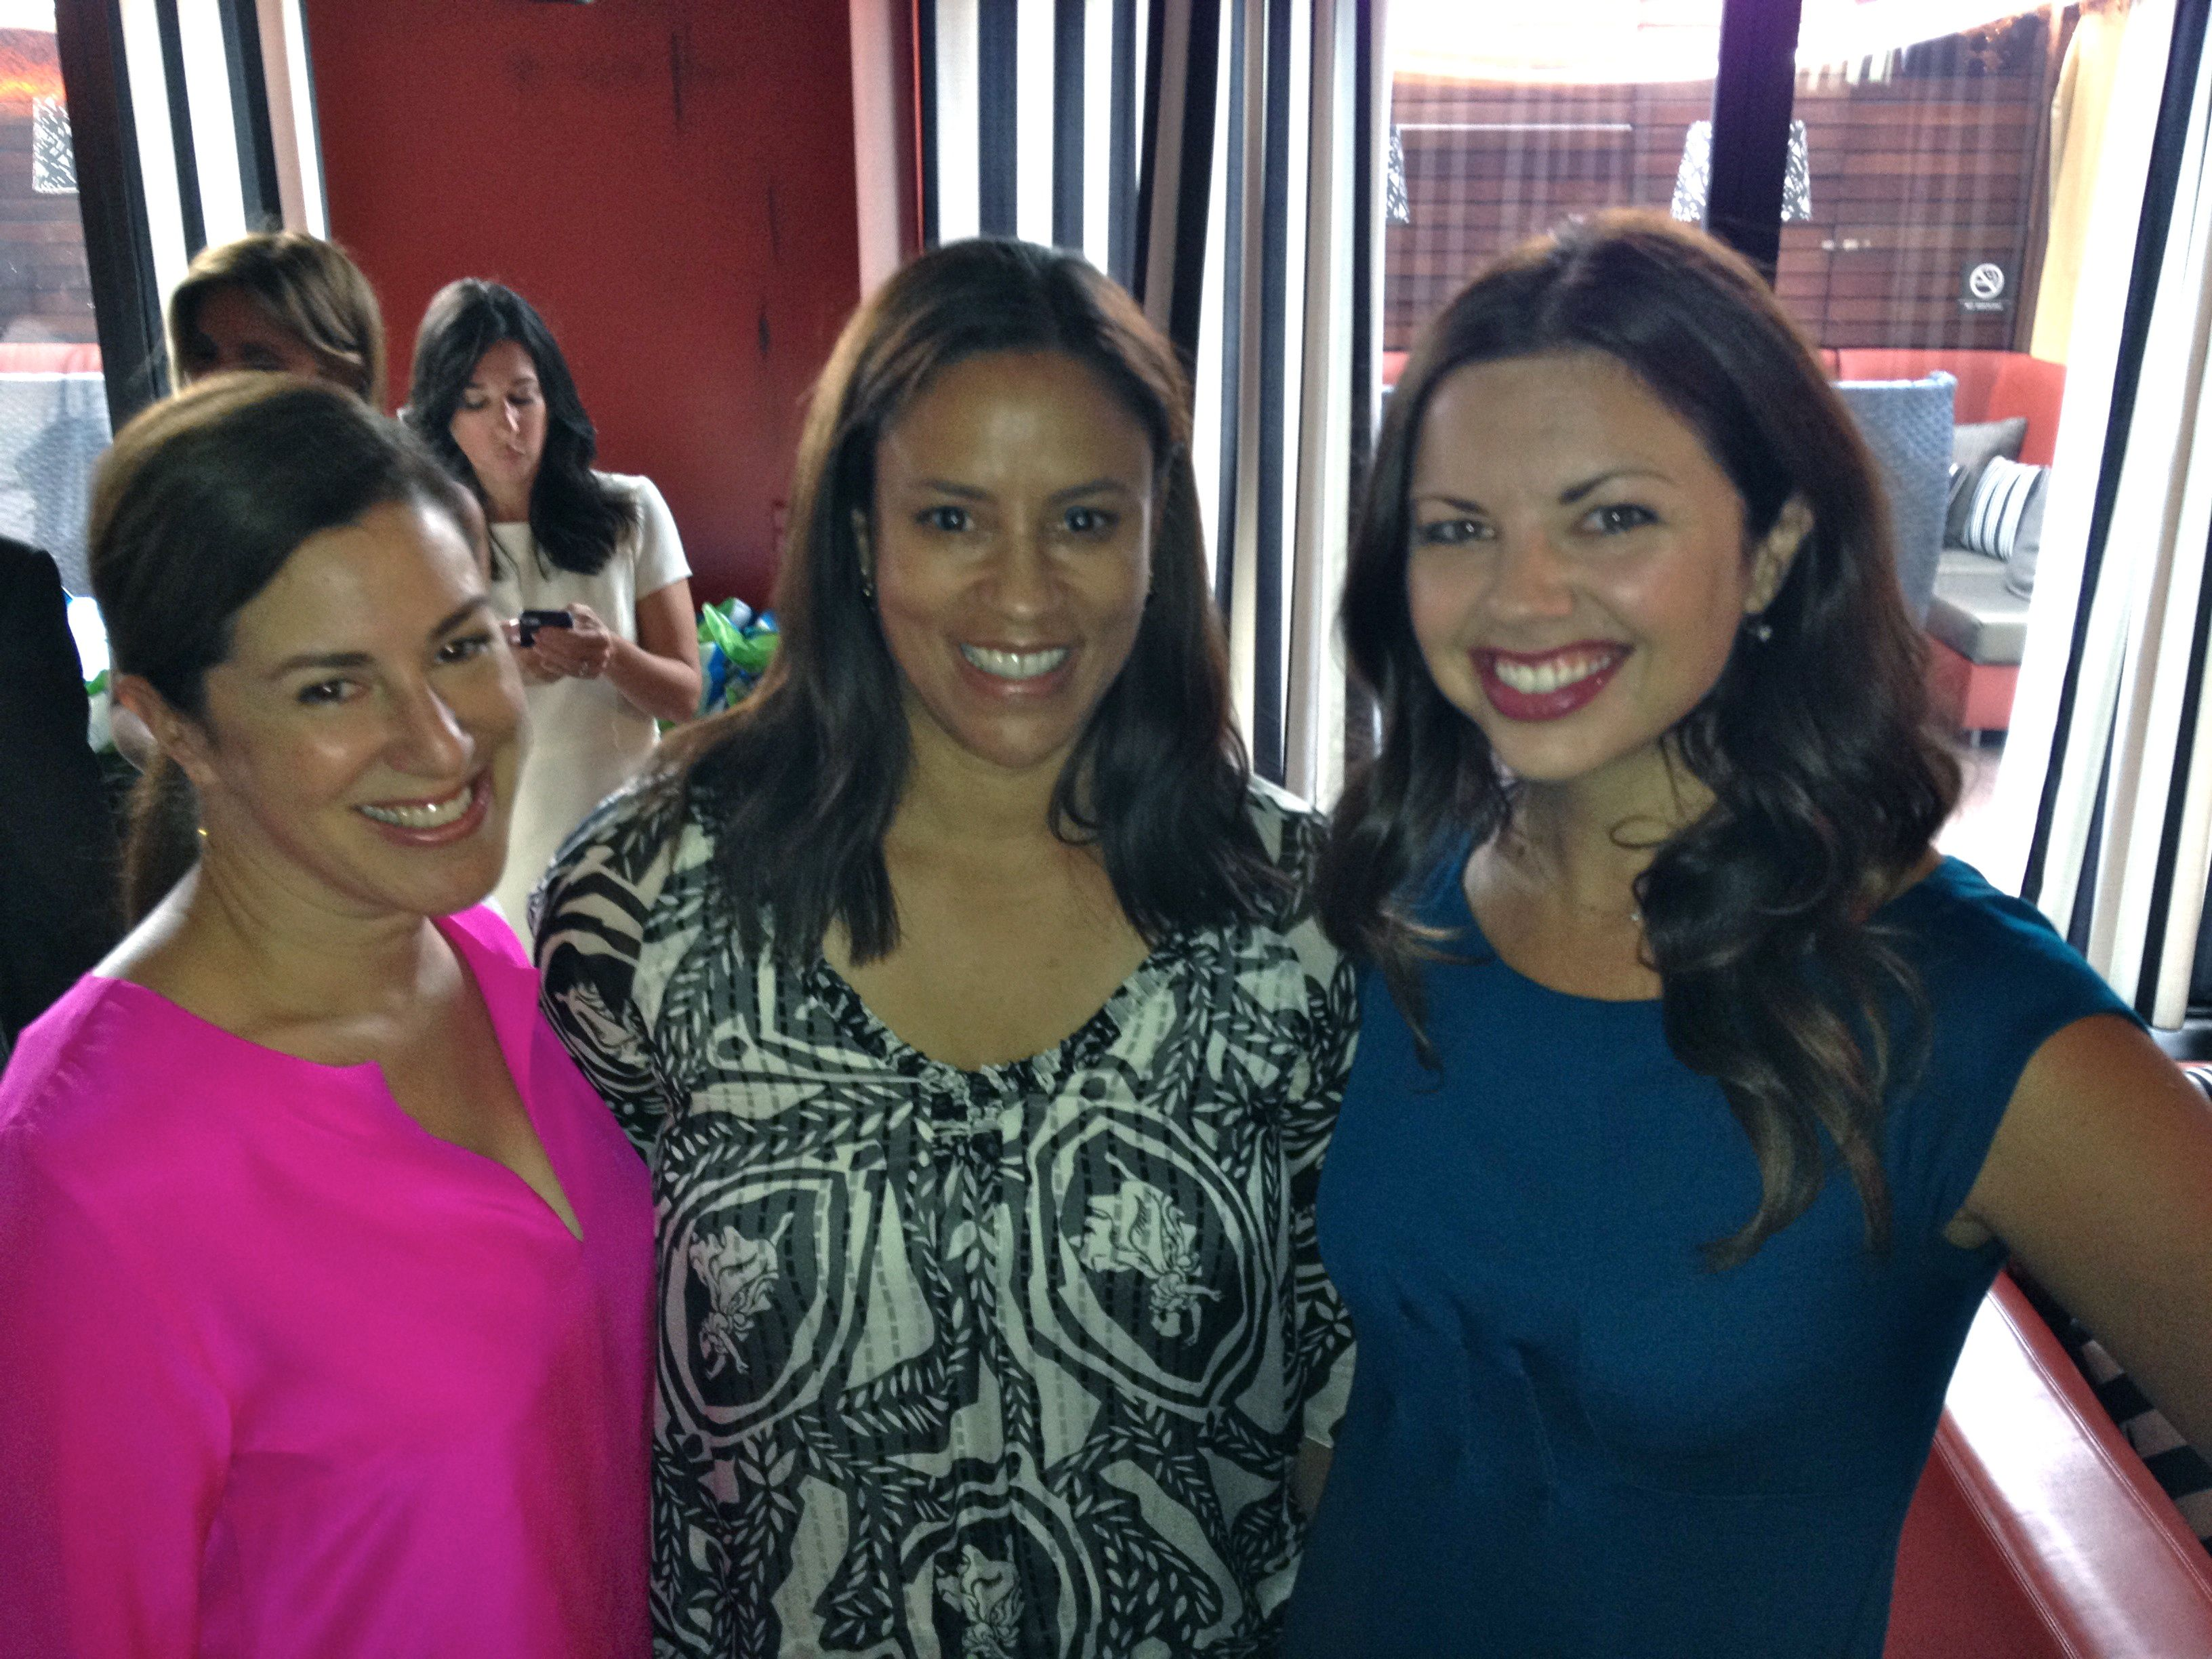 With some of my favorite writers/social media ladies, Sarah Maizes and Ashley Faucet at the event. This is social media at its best, truly.